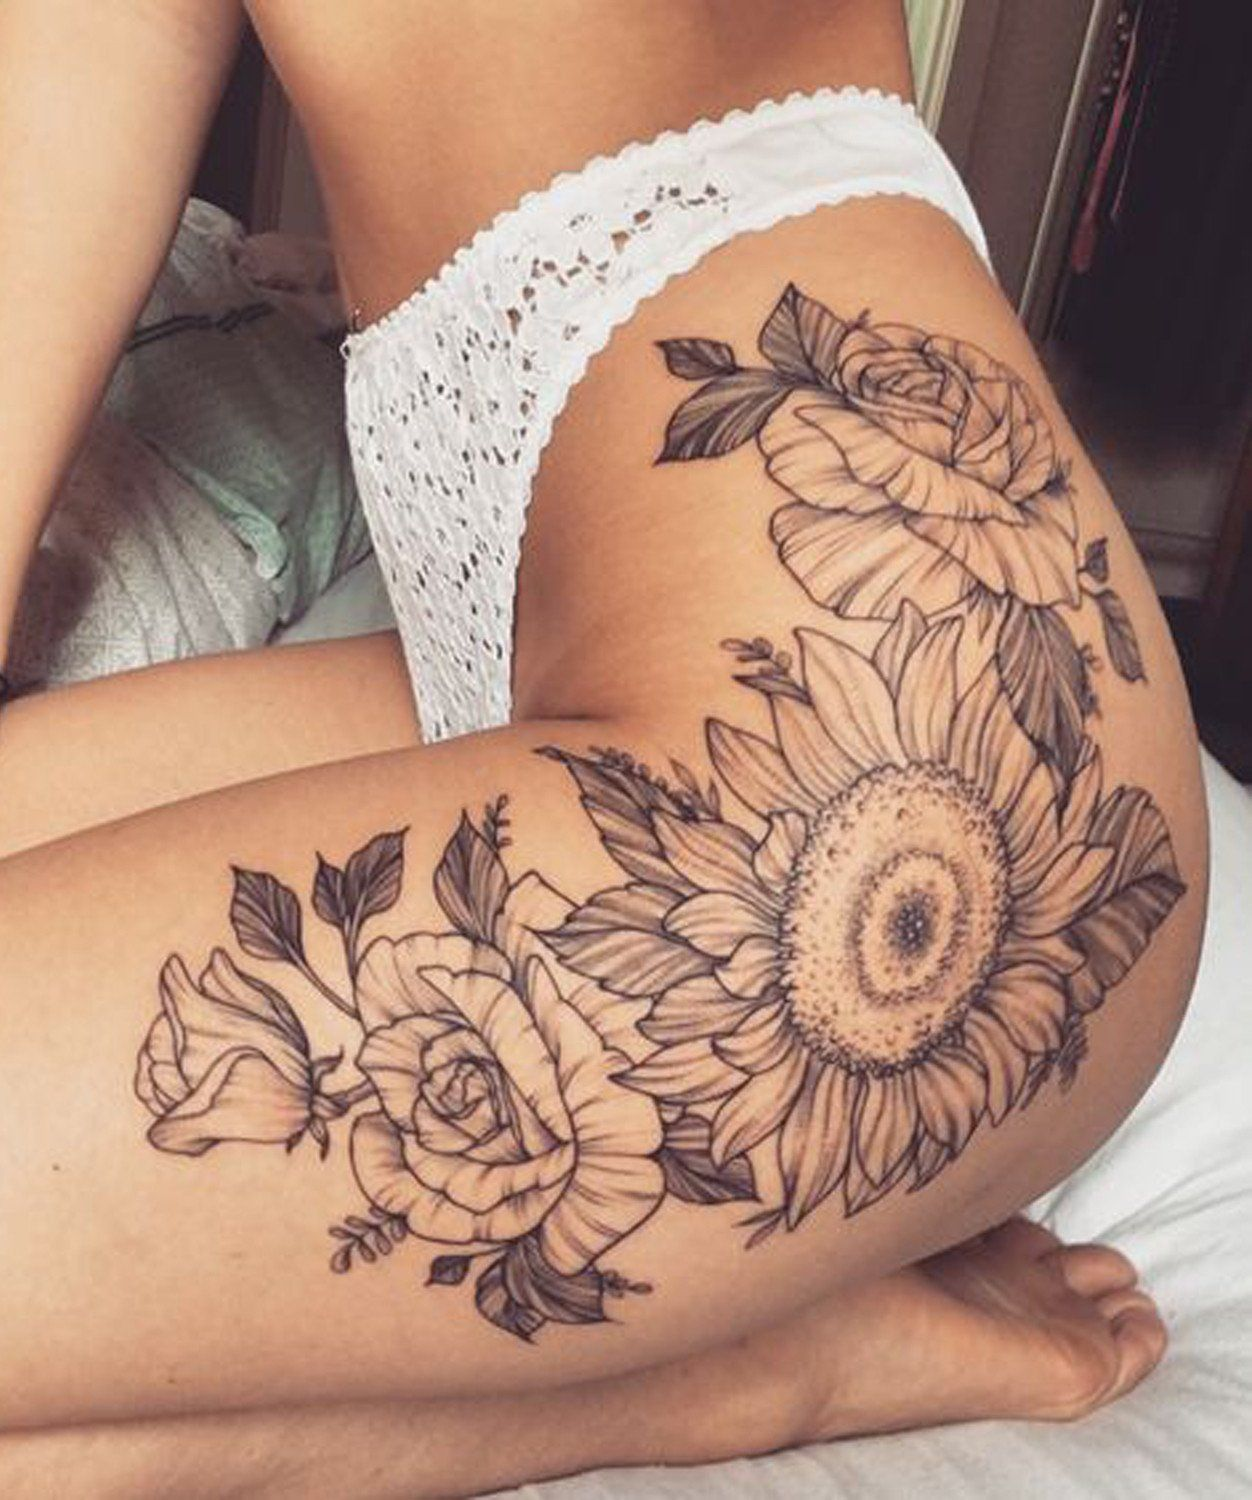 of the most boujee sunflower tattoo ideas thigh tattoos leg